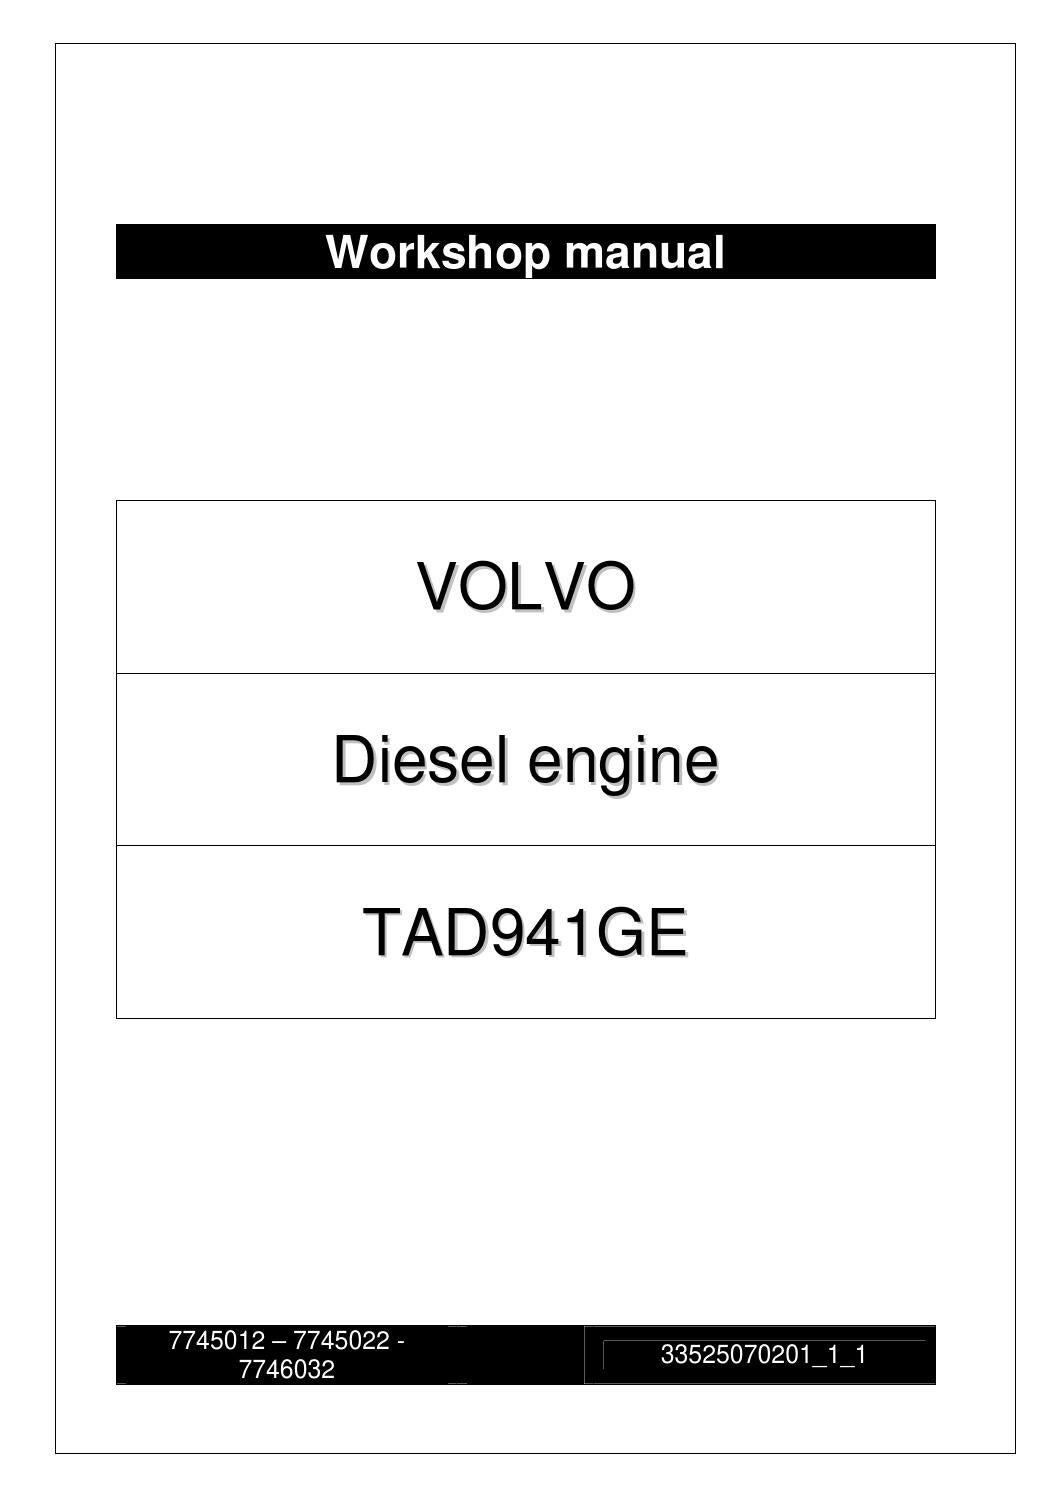 Workshop Manual Volvo Tad941ge Engine By Power Generation Issuu 83 Wiring Harness